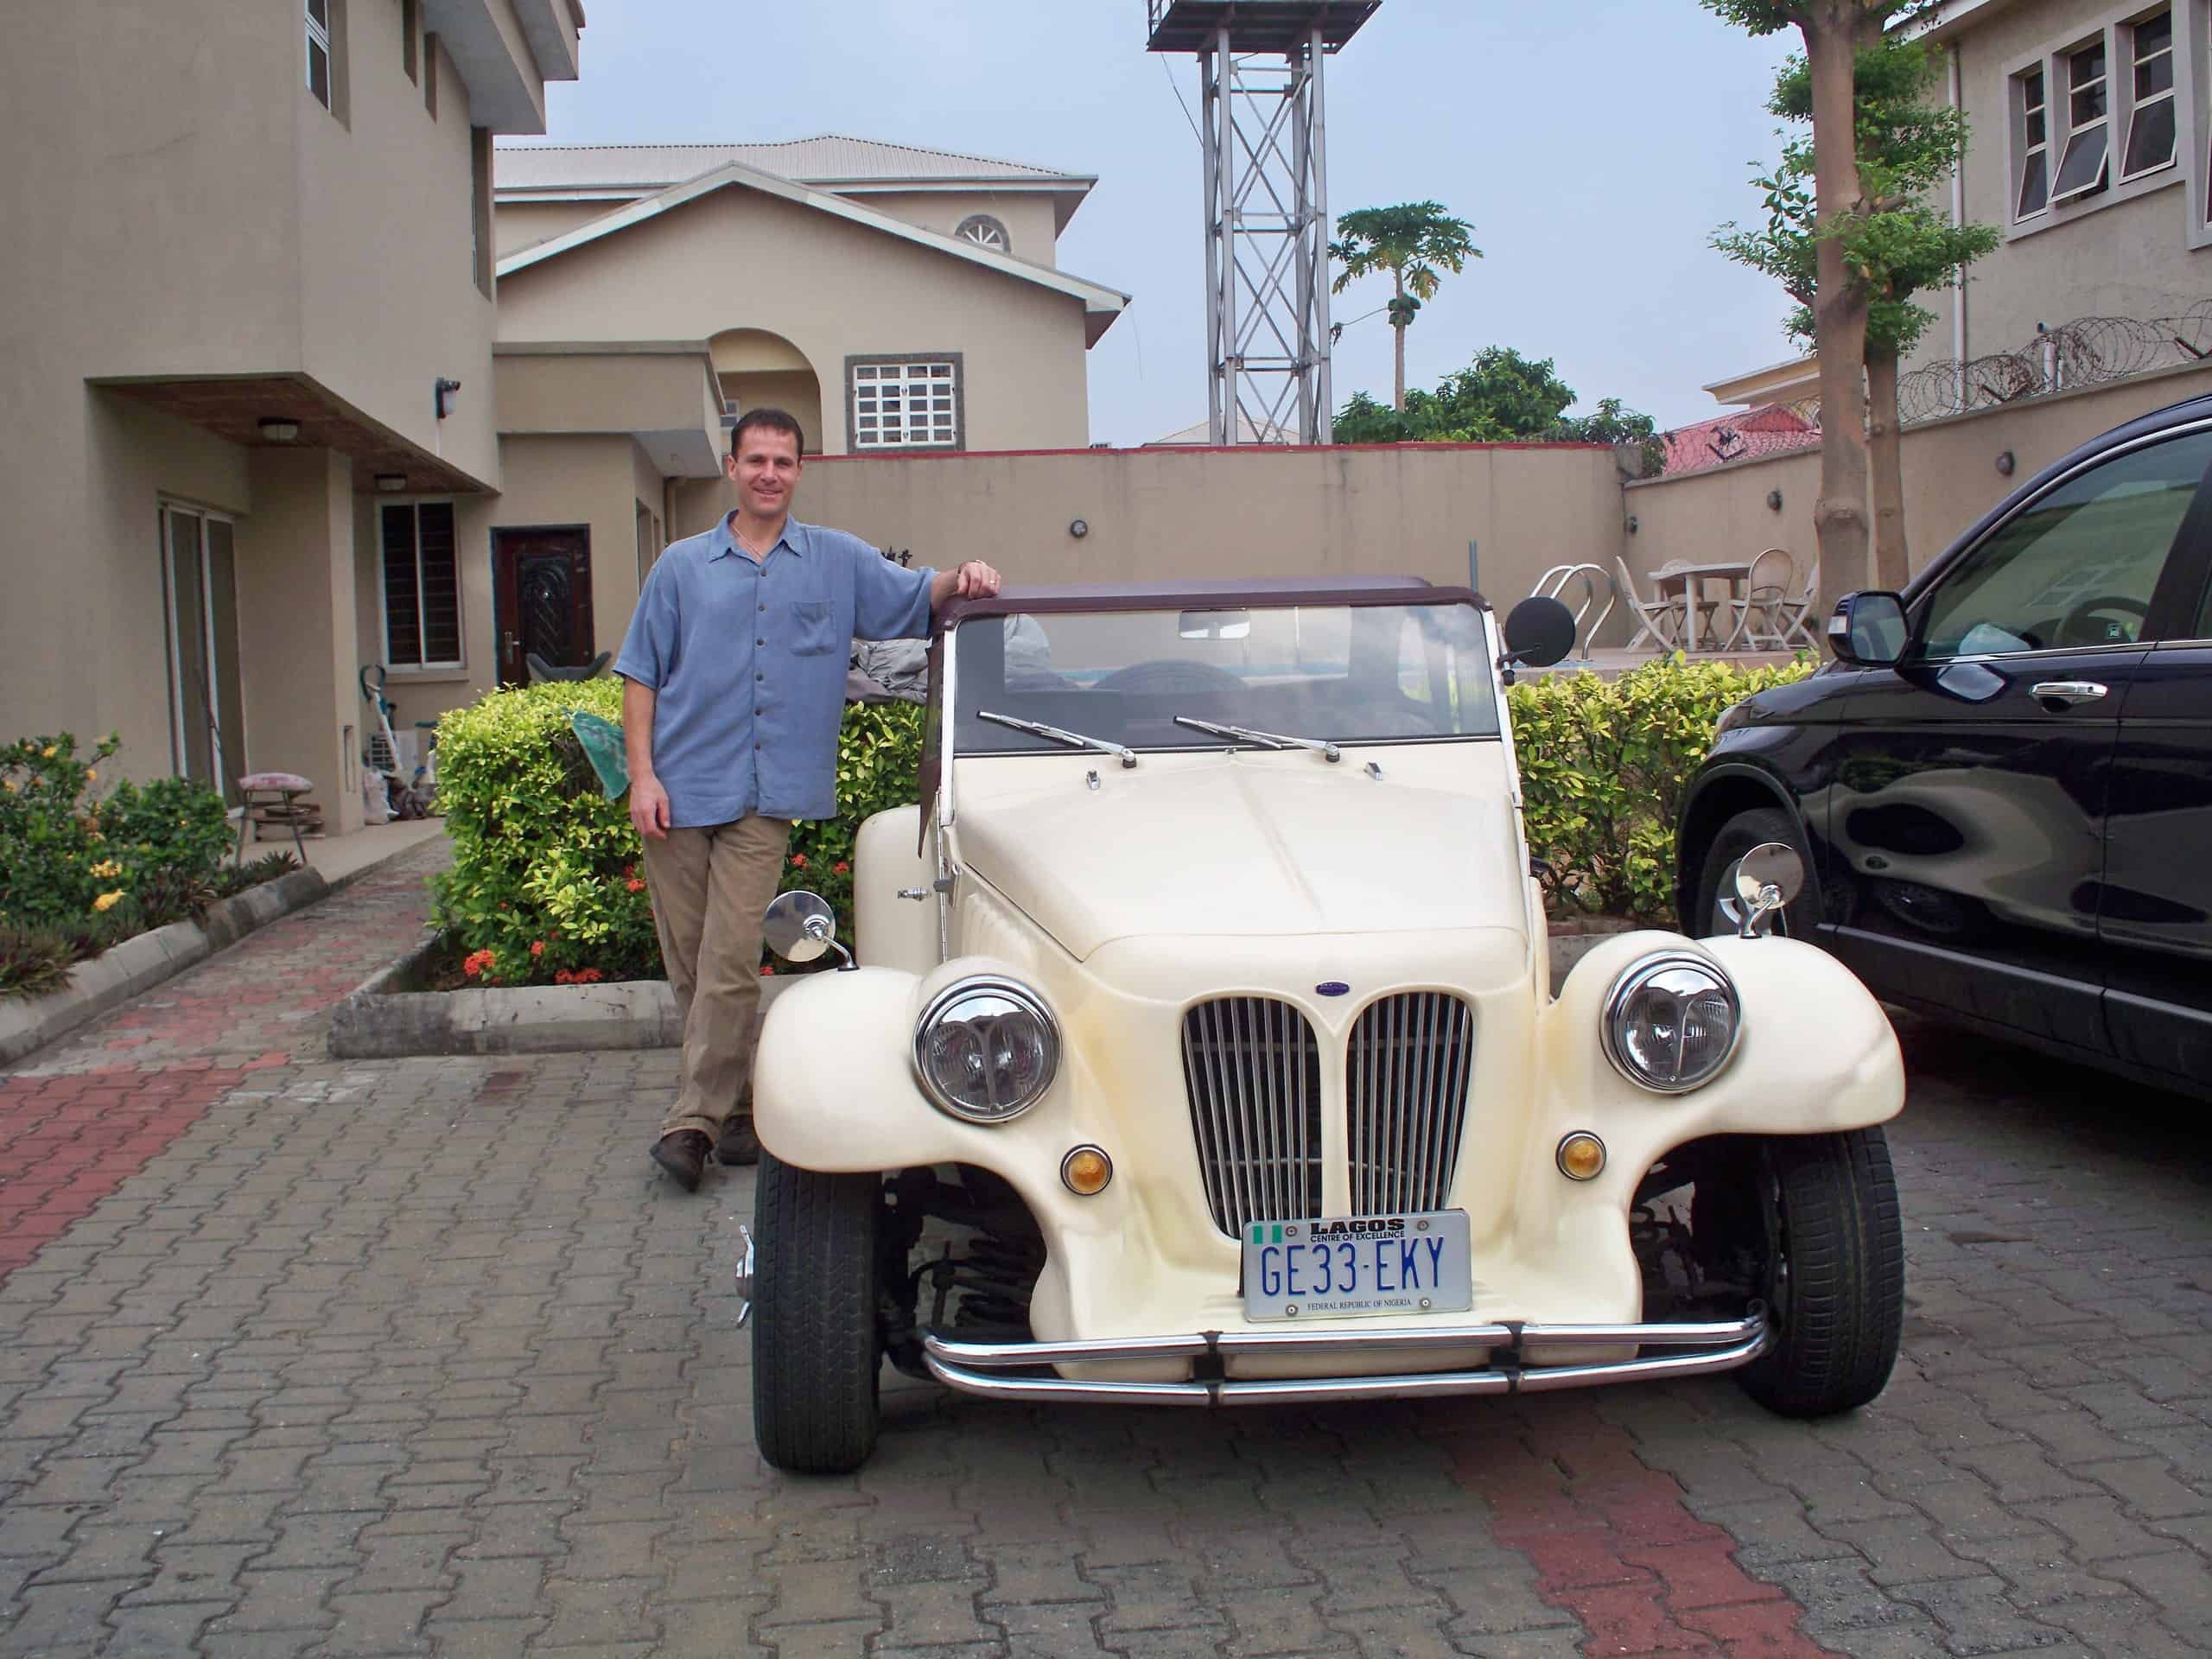 Steve Roller standing with a off white vintage car